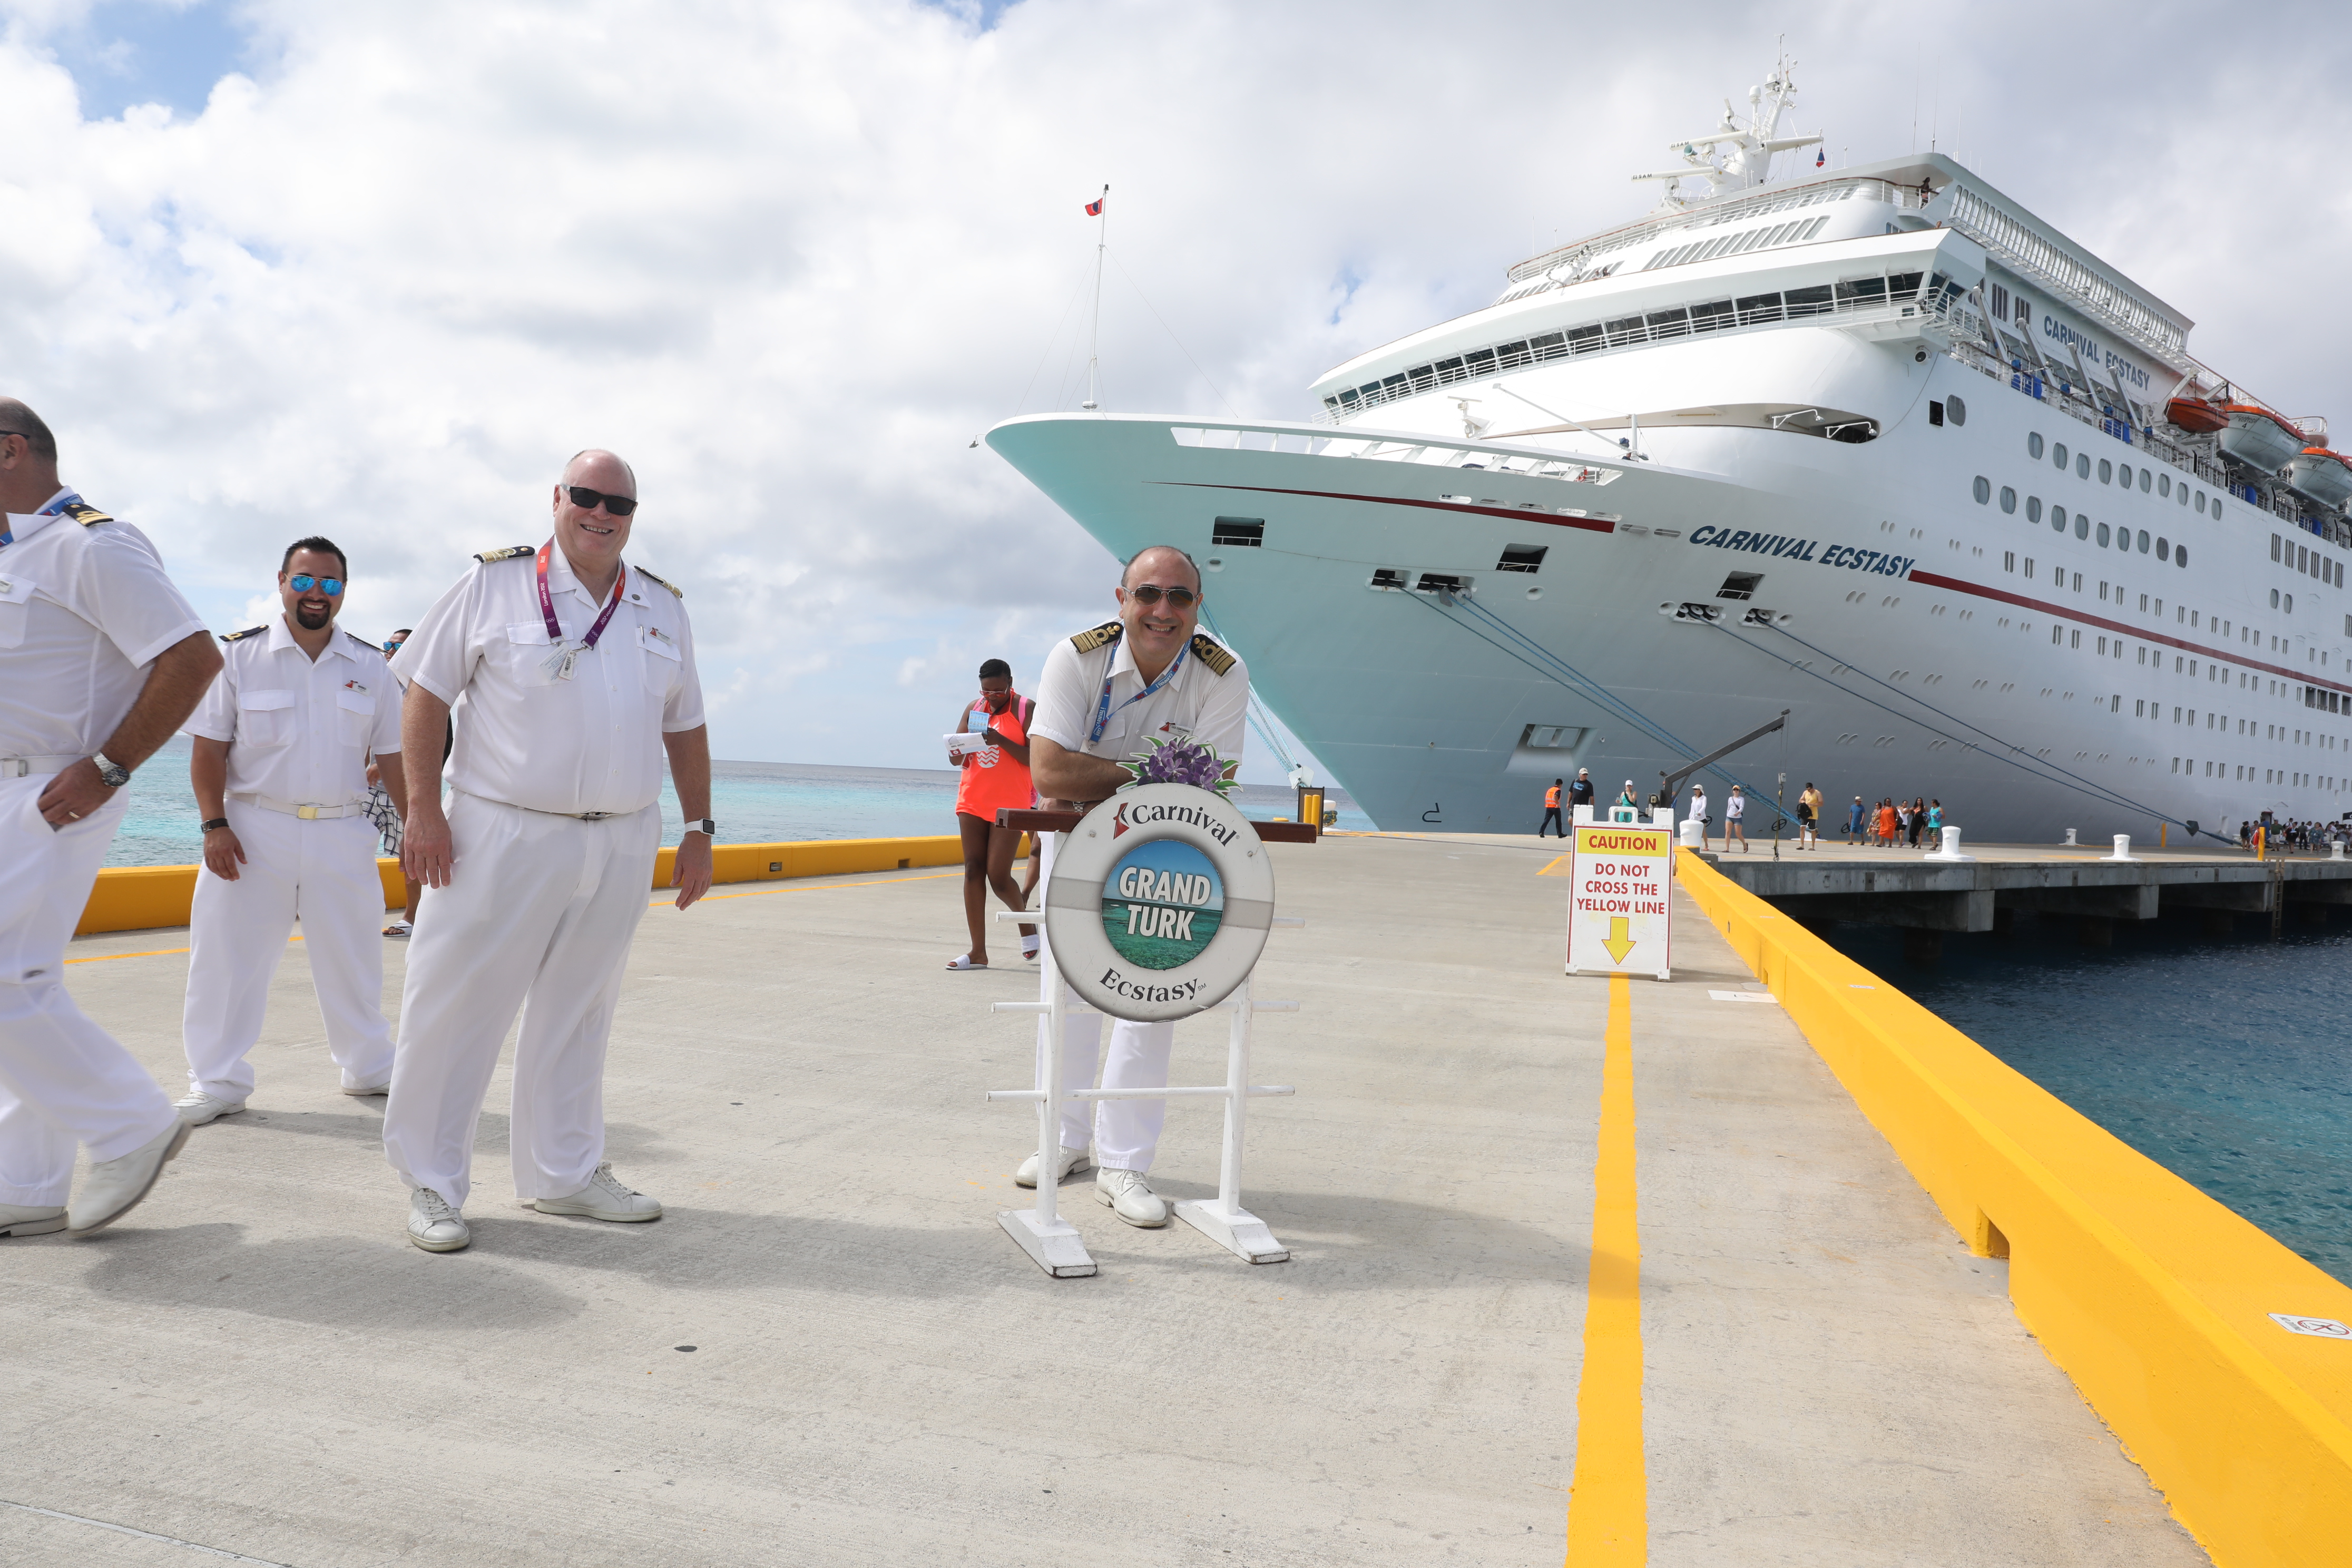 Grand Turk Cruise Center Re-Opens with Visit from Carnival Ecstasy